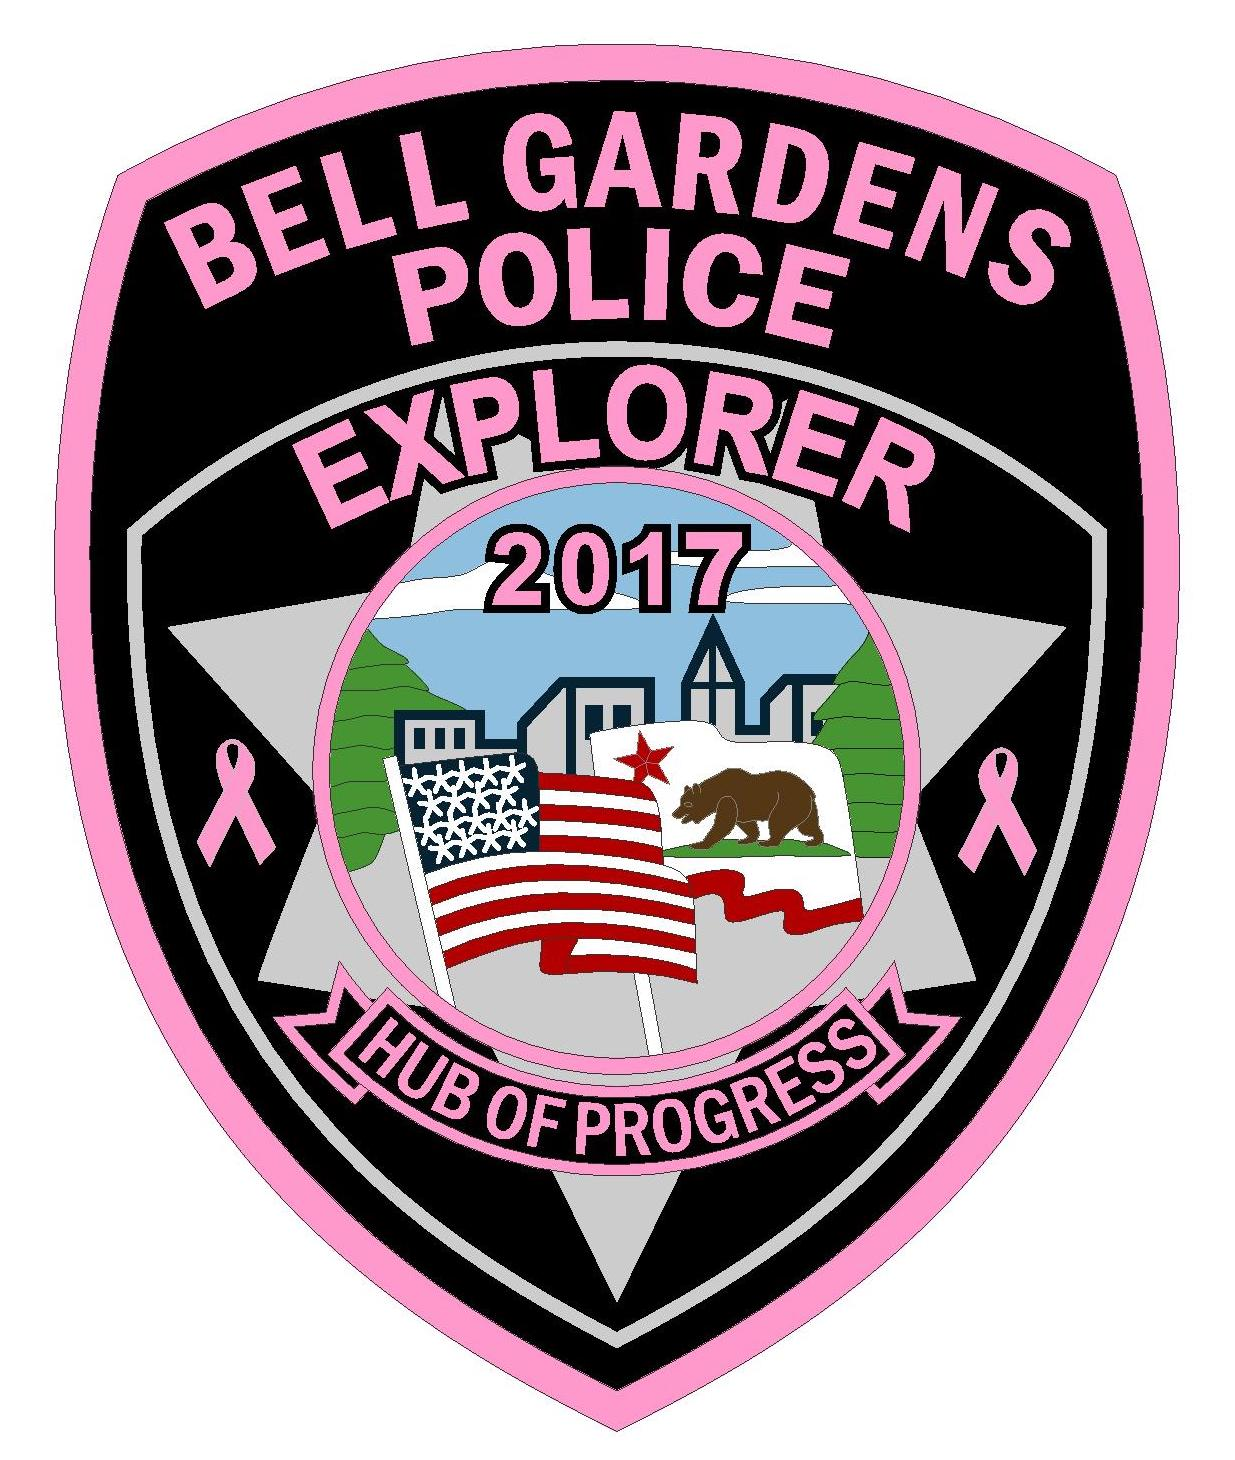 BELL GARDENS (CA) - PINK PATCH 2017 EXPLORER-page-001.jpg